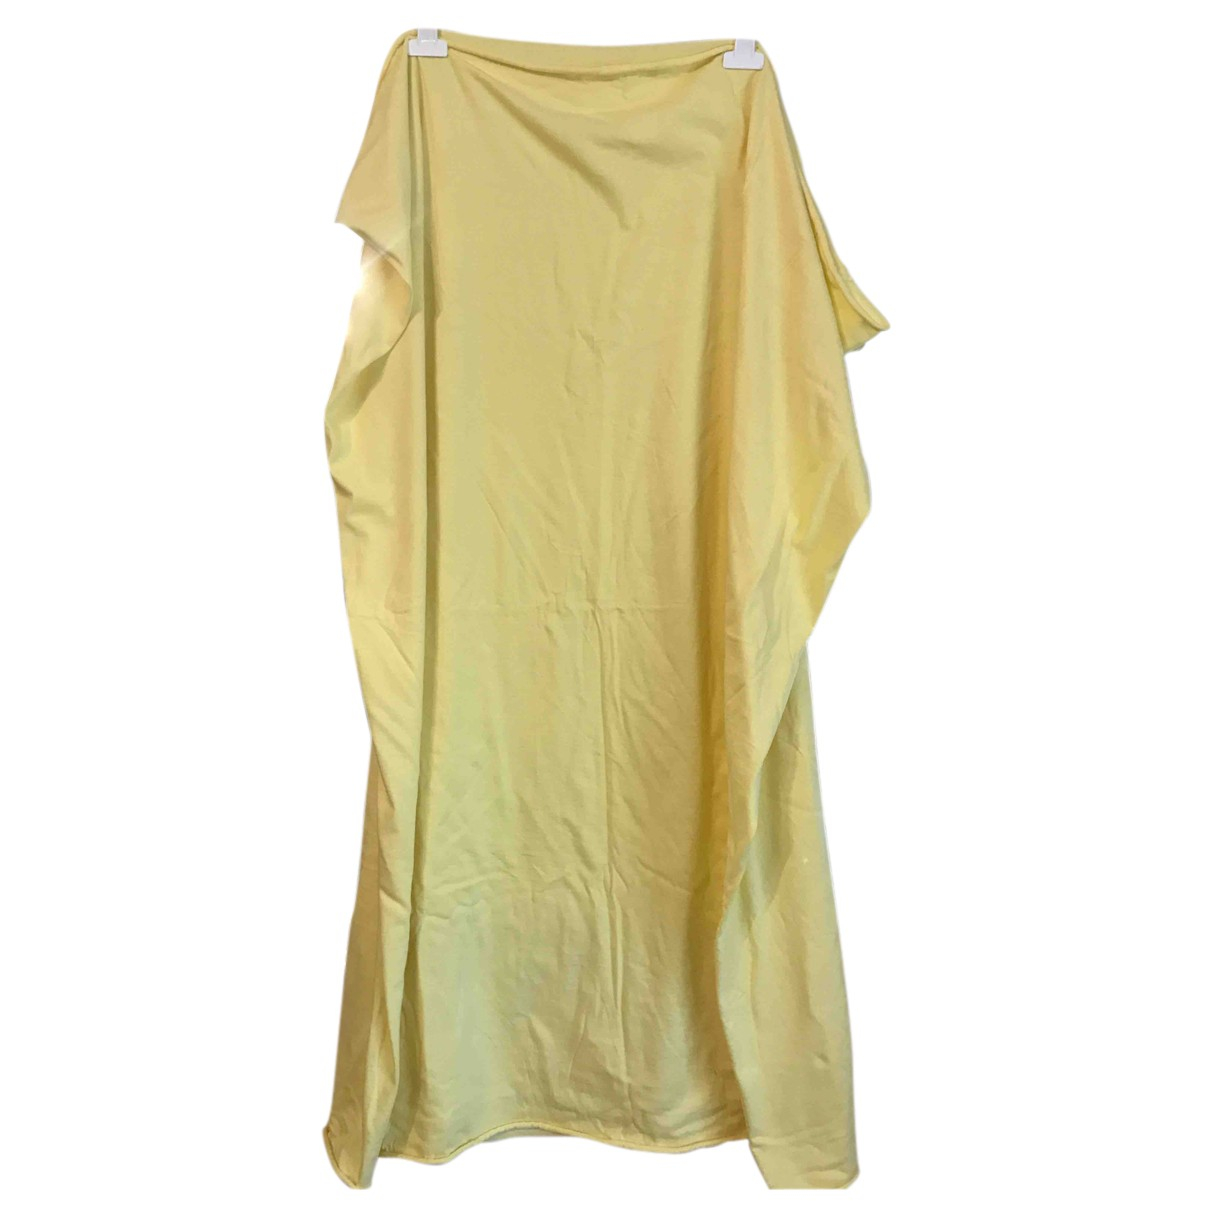 American Apparel N Yellow Cotton scarf for Women N